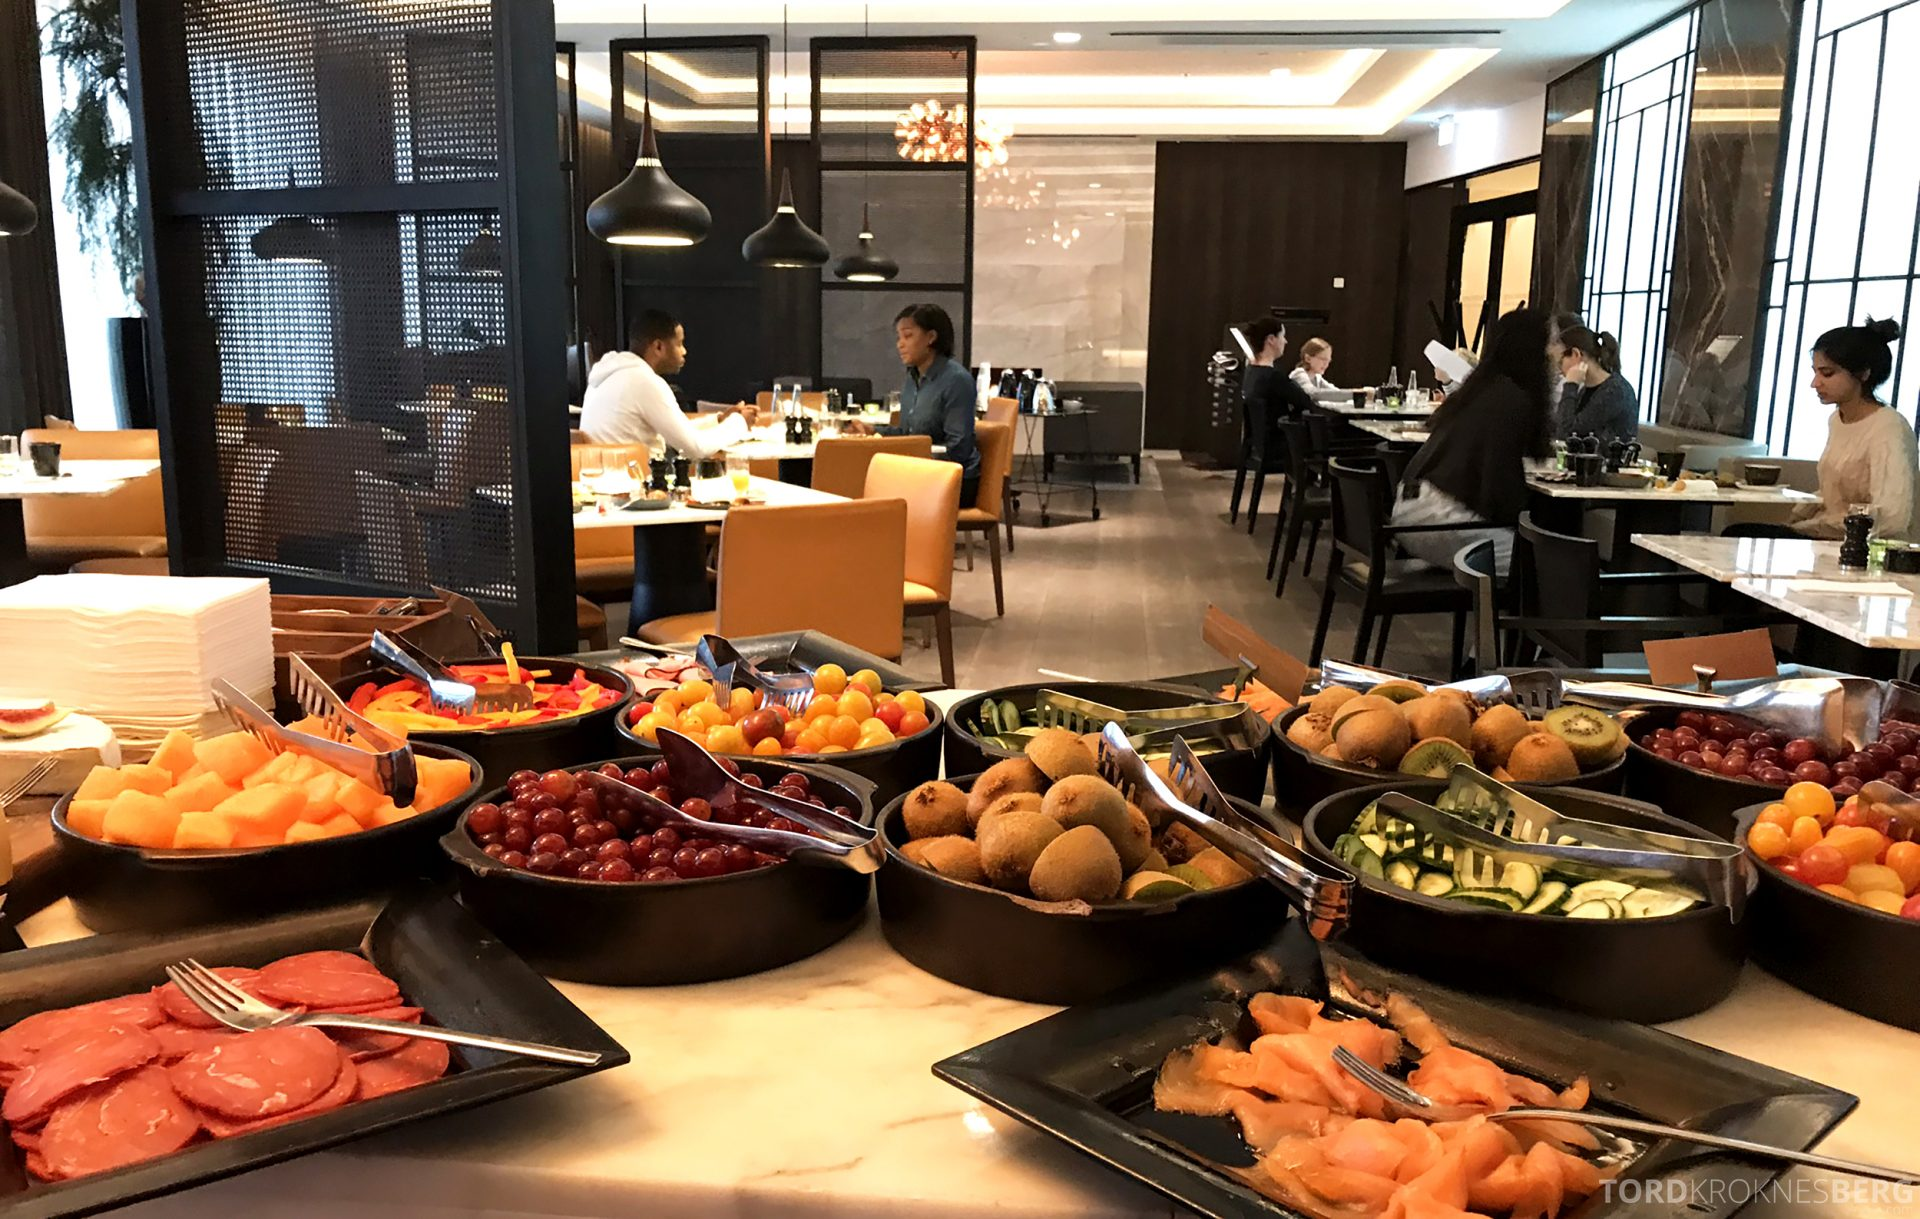 Marriott Copenhagen Hotel Executive Lounge utsikt frokostbuffet